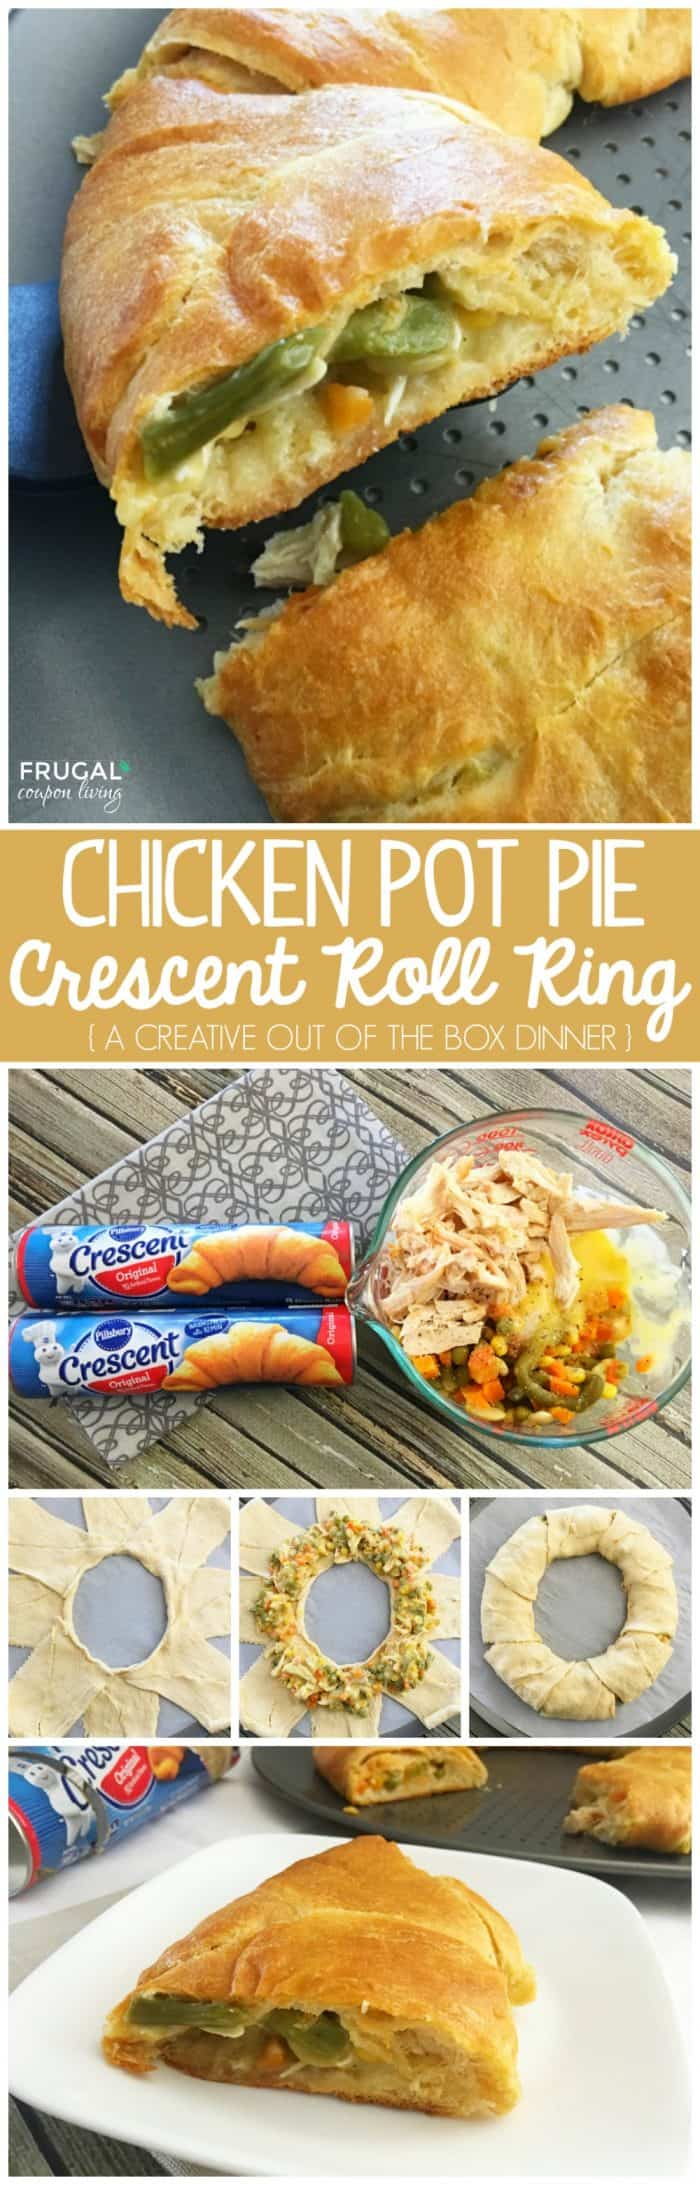 Chicken-Pot-Pie-Crescent-Roll-Ring-collage-long-frugal-coupon-living